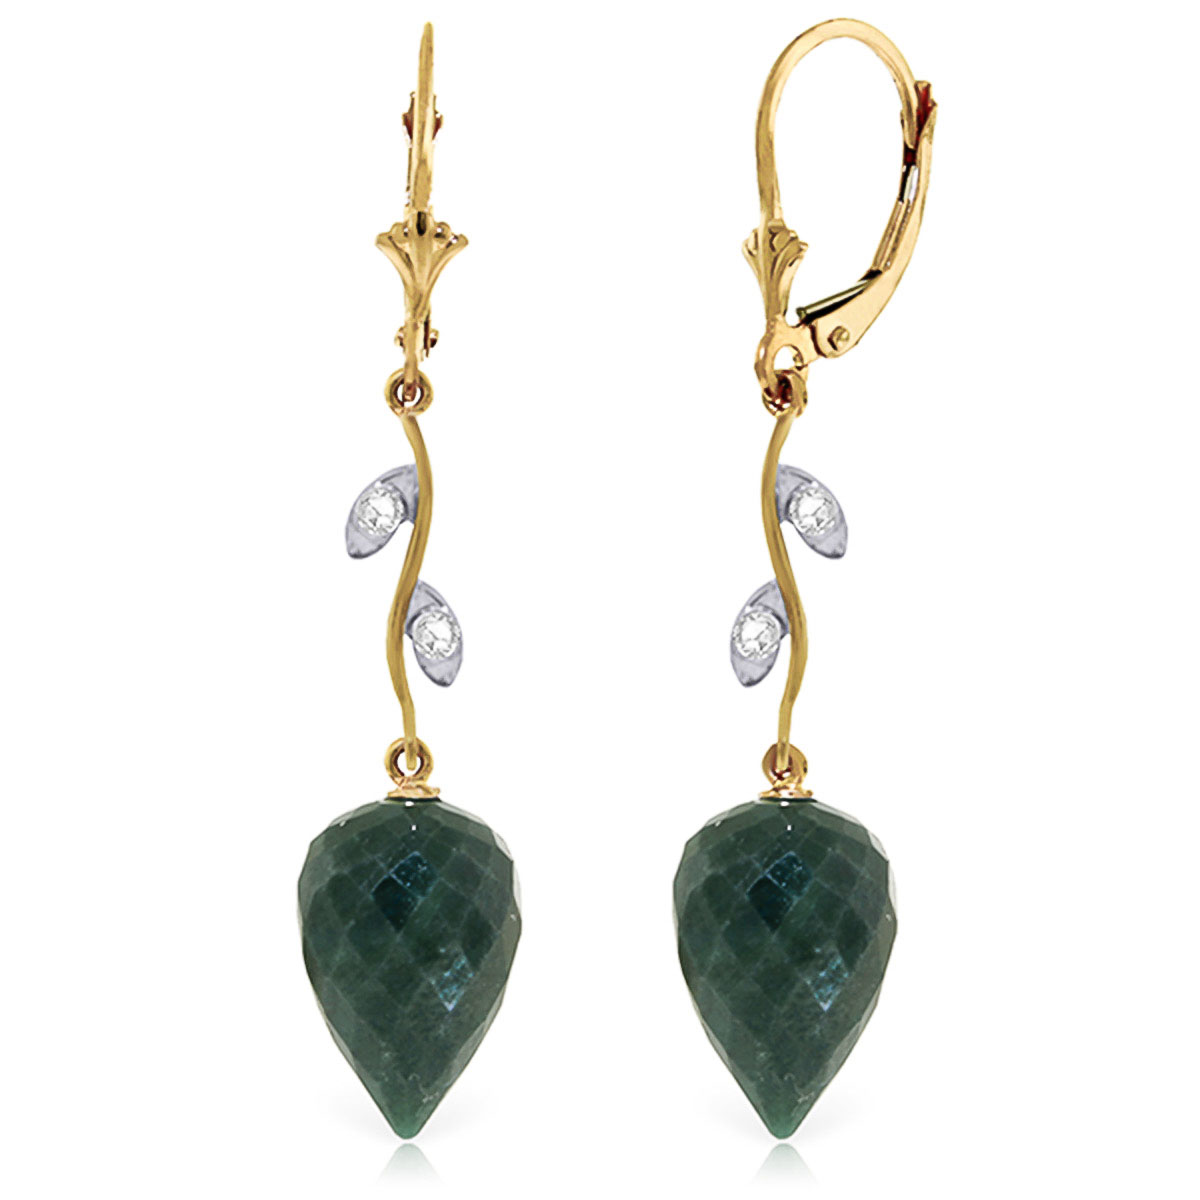 Emerald and Diamond Drop Earrings 25.7ctw in 9ct Gold